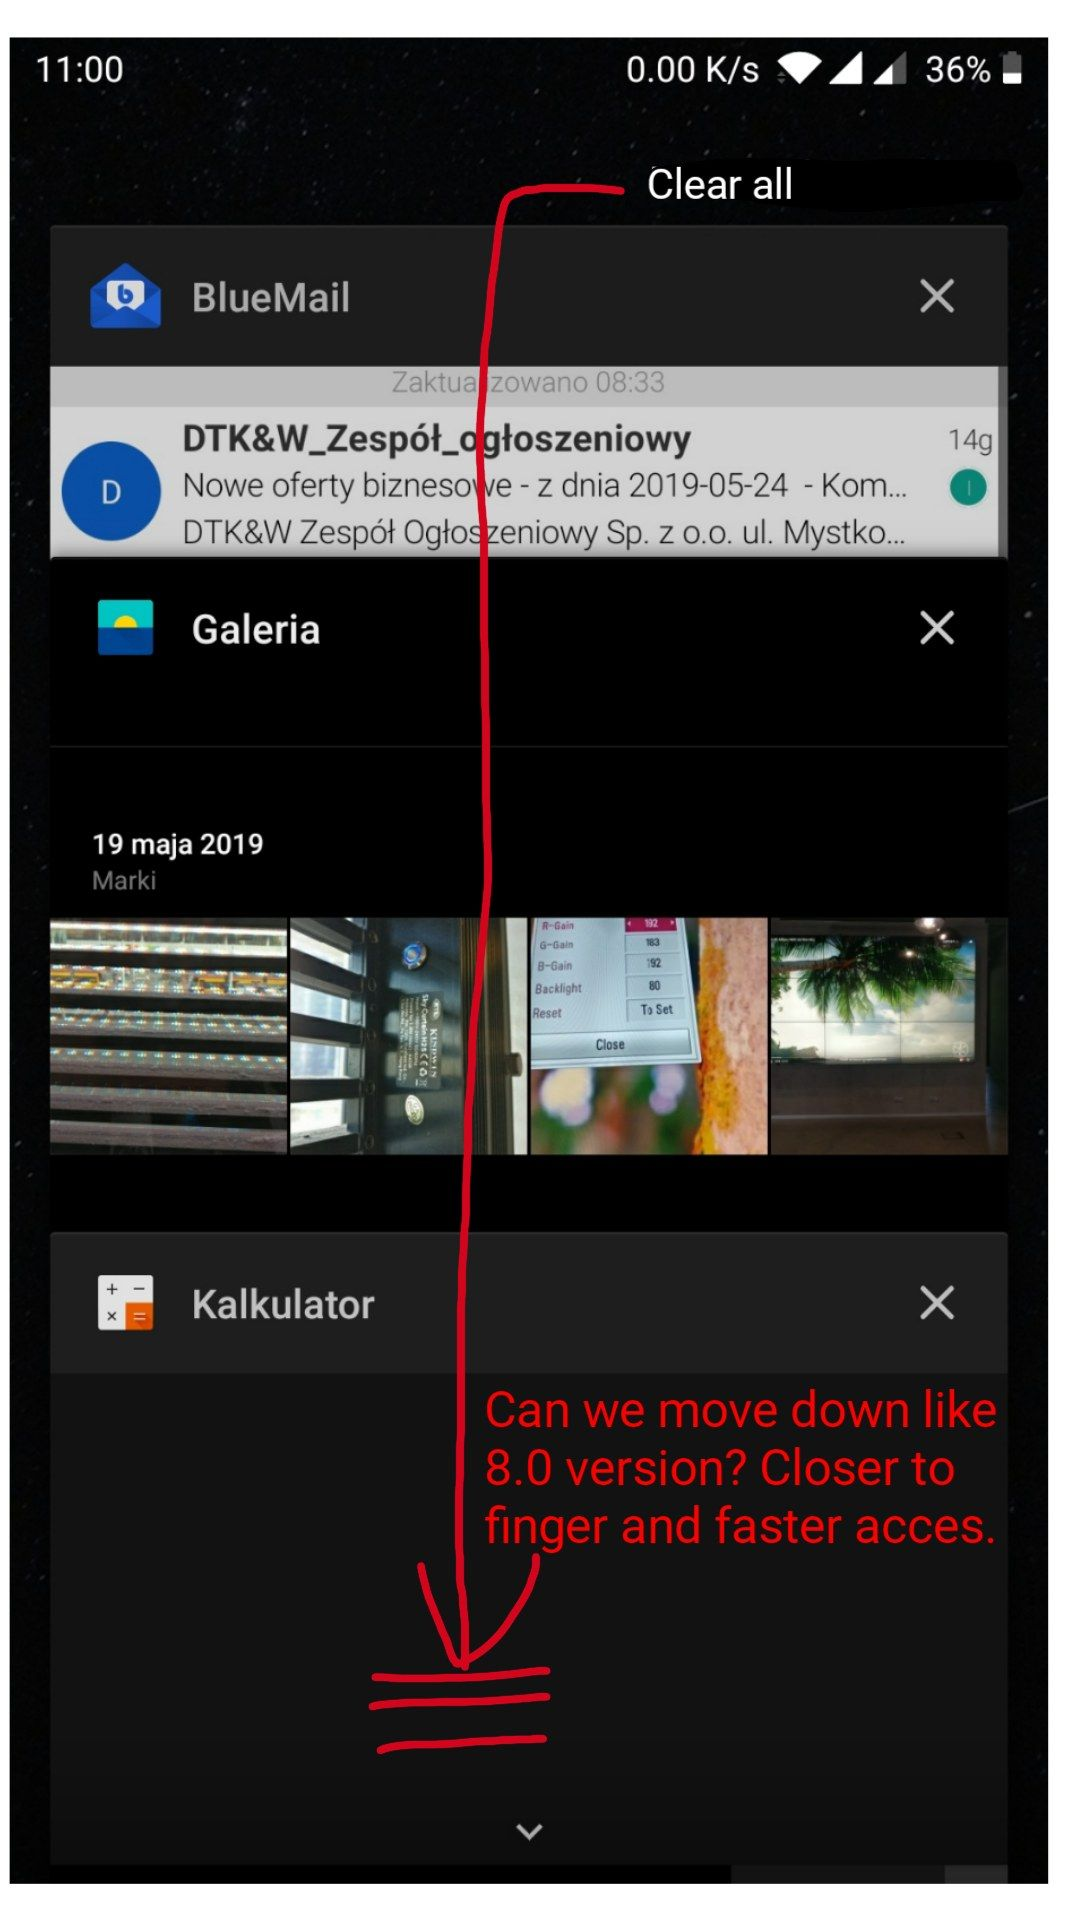 Android Pie task manager close button position - OnePlus